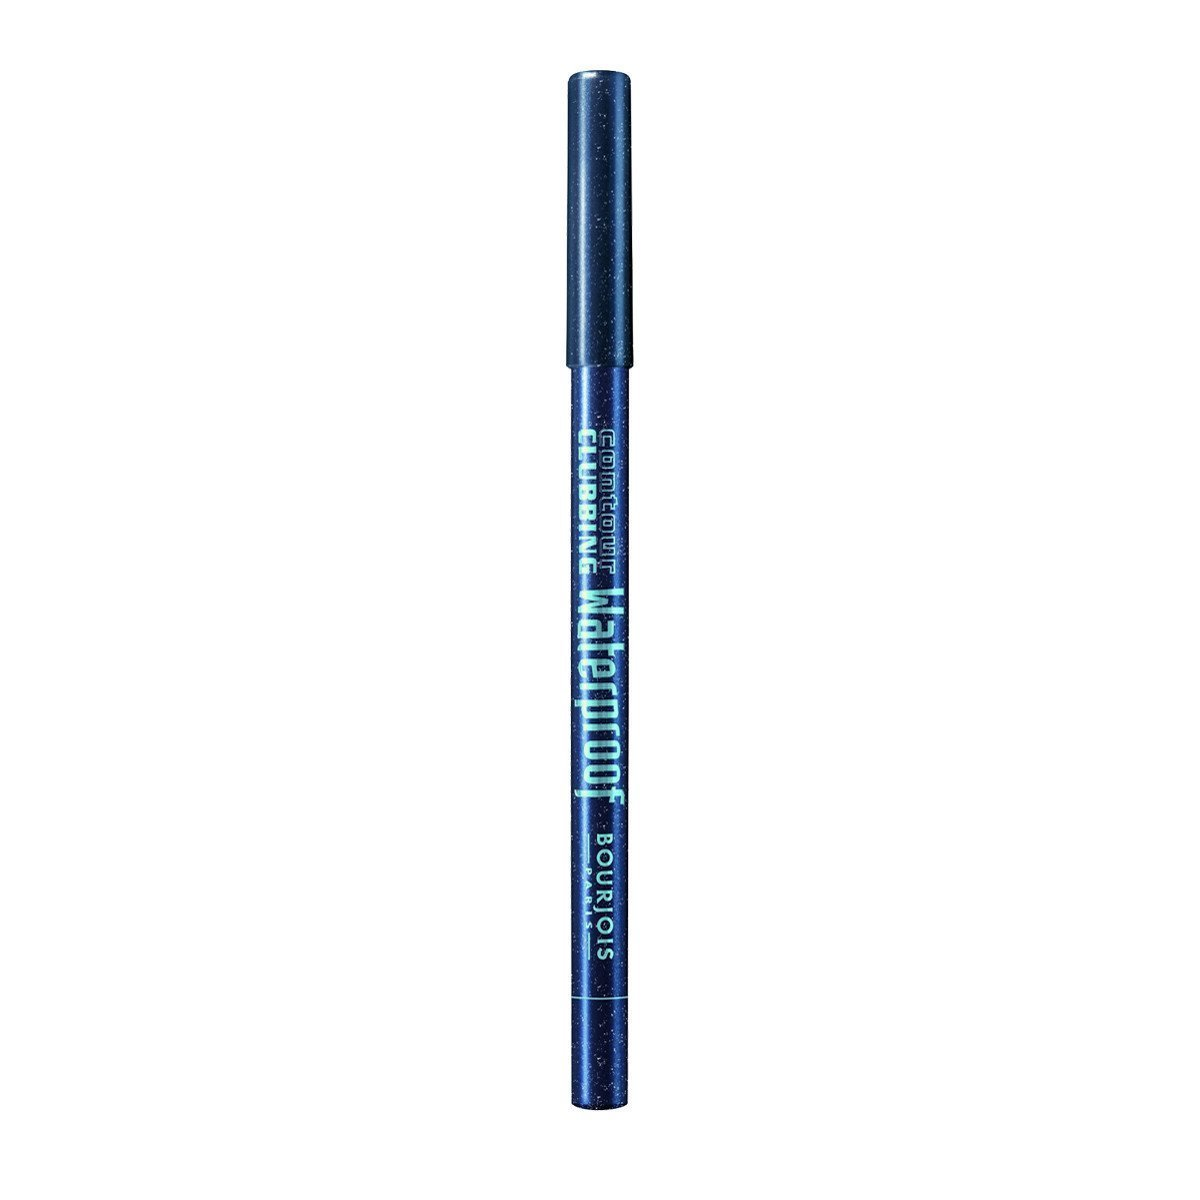 BOURJOIS LAPIZ CONTOUR CLUBBING 056 BLUE IT YOURSELF